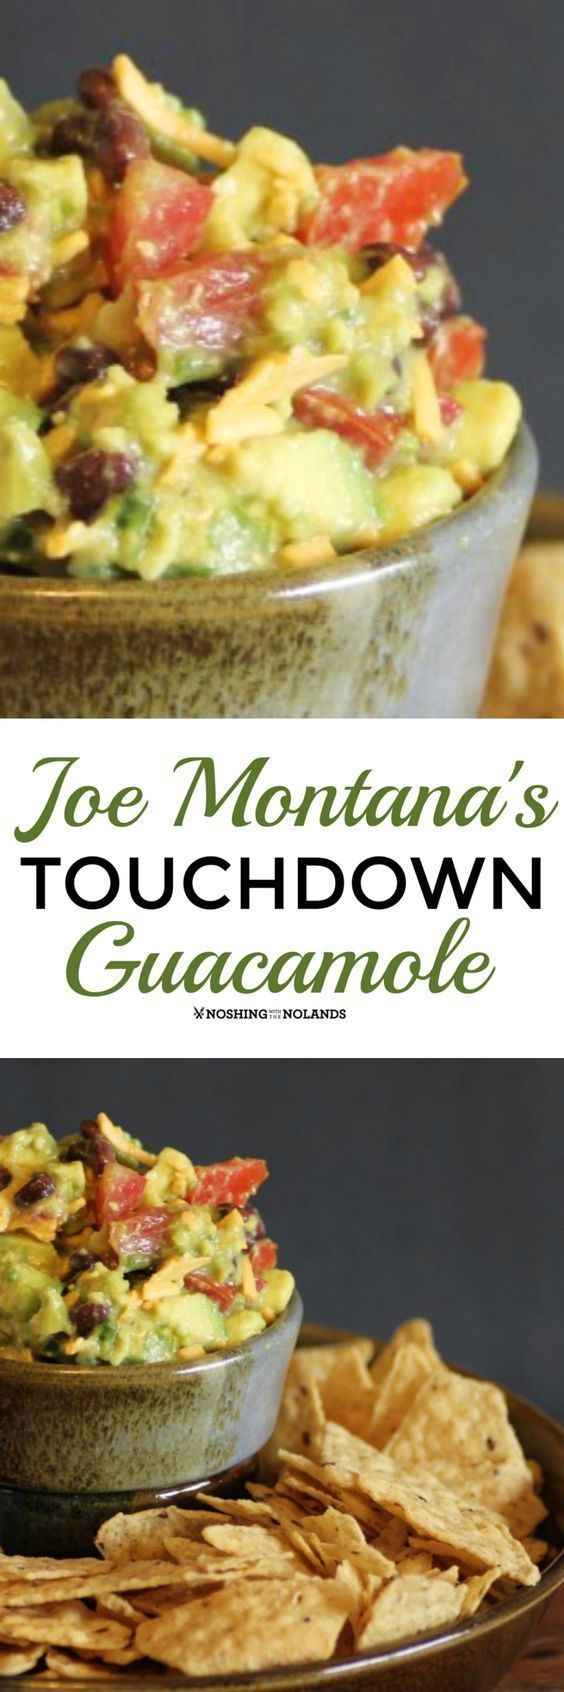 Joe Montana's Touchdown Guacamole by Noshing With The Nolands is full of delicious flavor! Perfect for game day or any day!